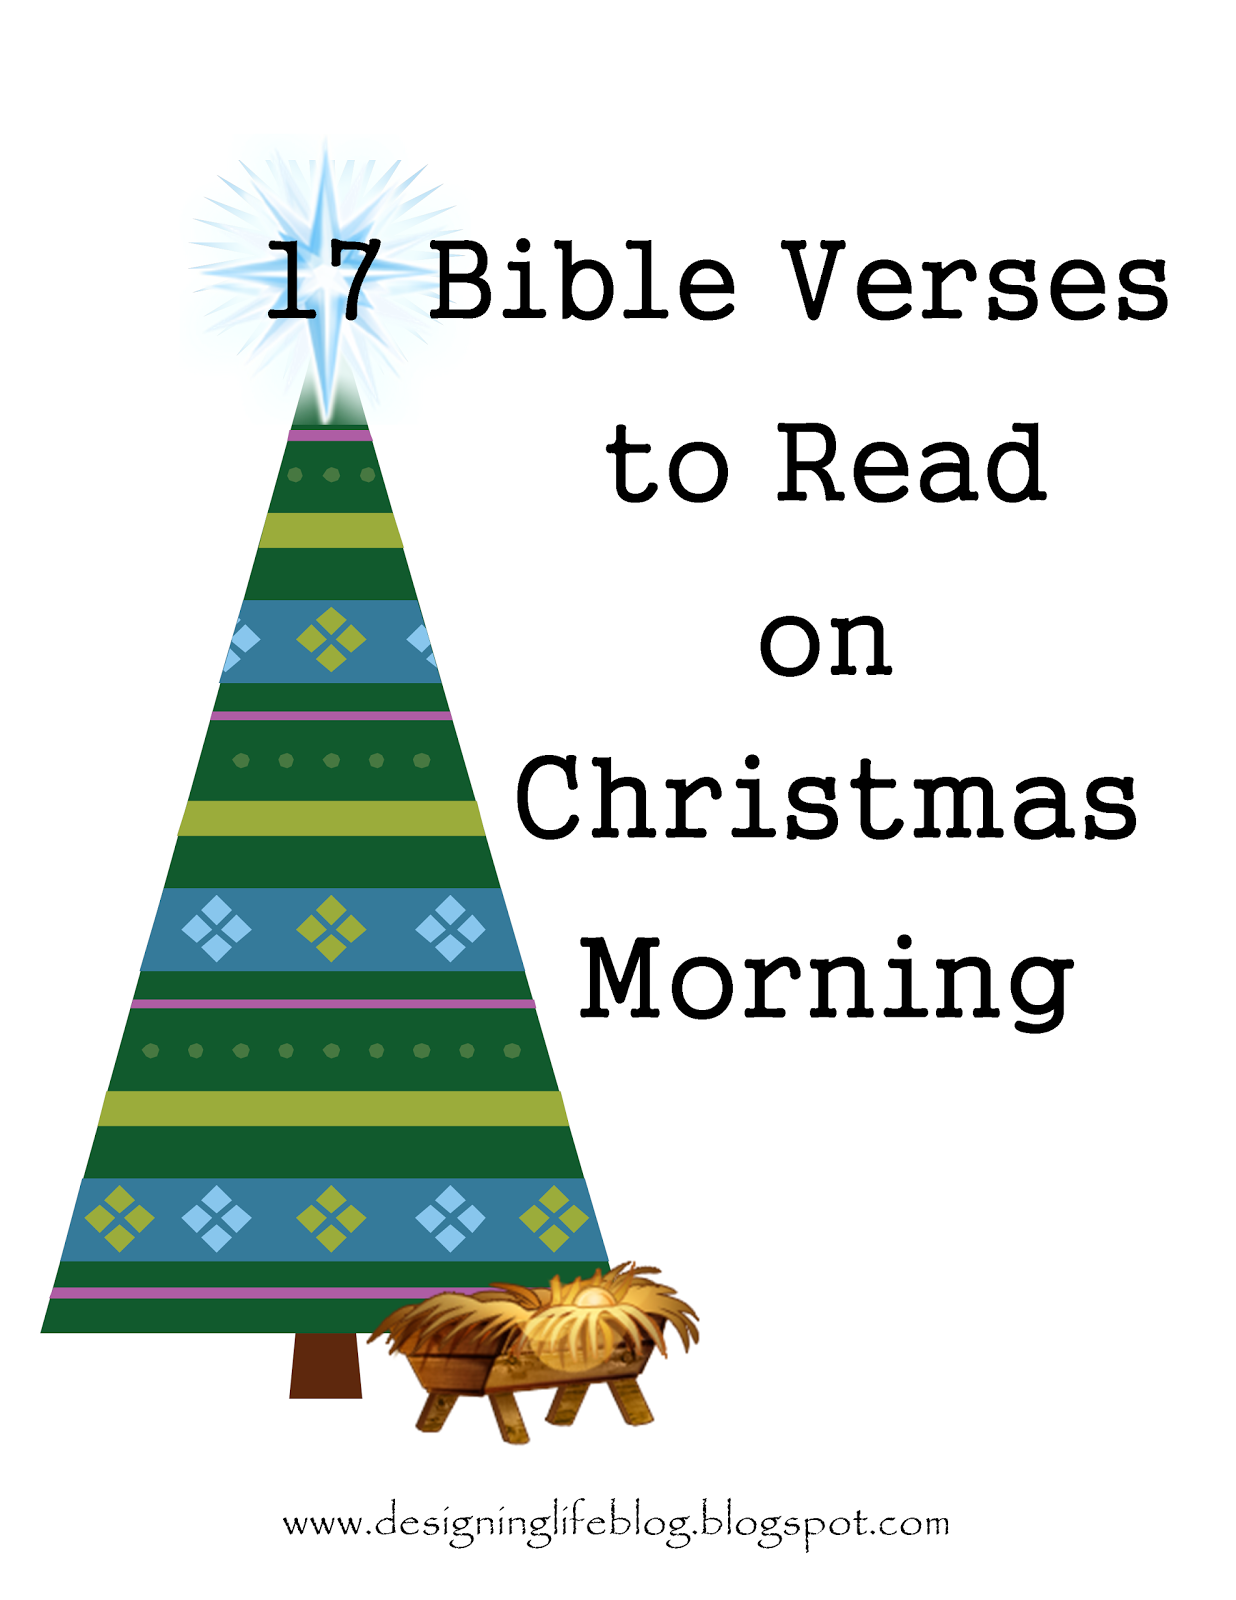 17 Bible Verses To Read On Christmas Morning